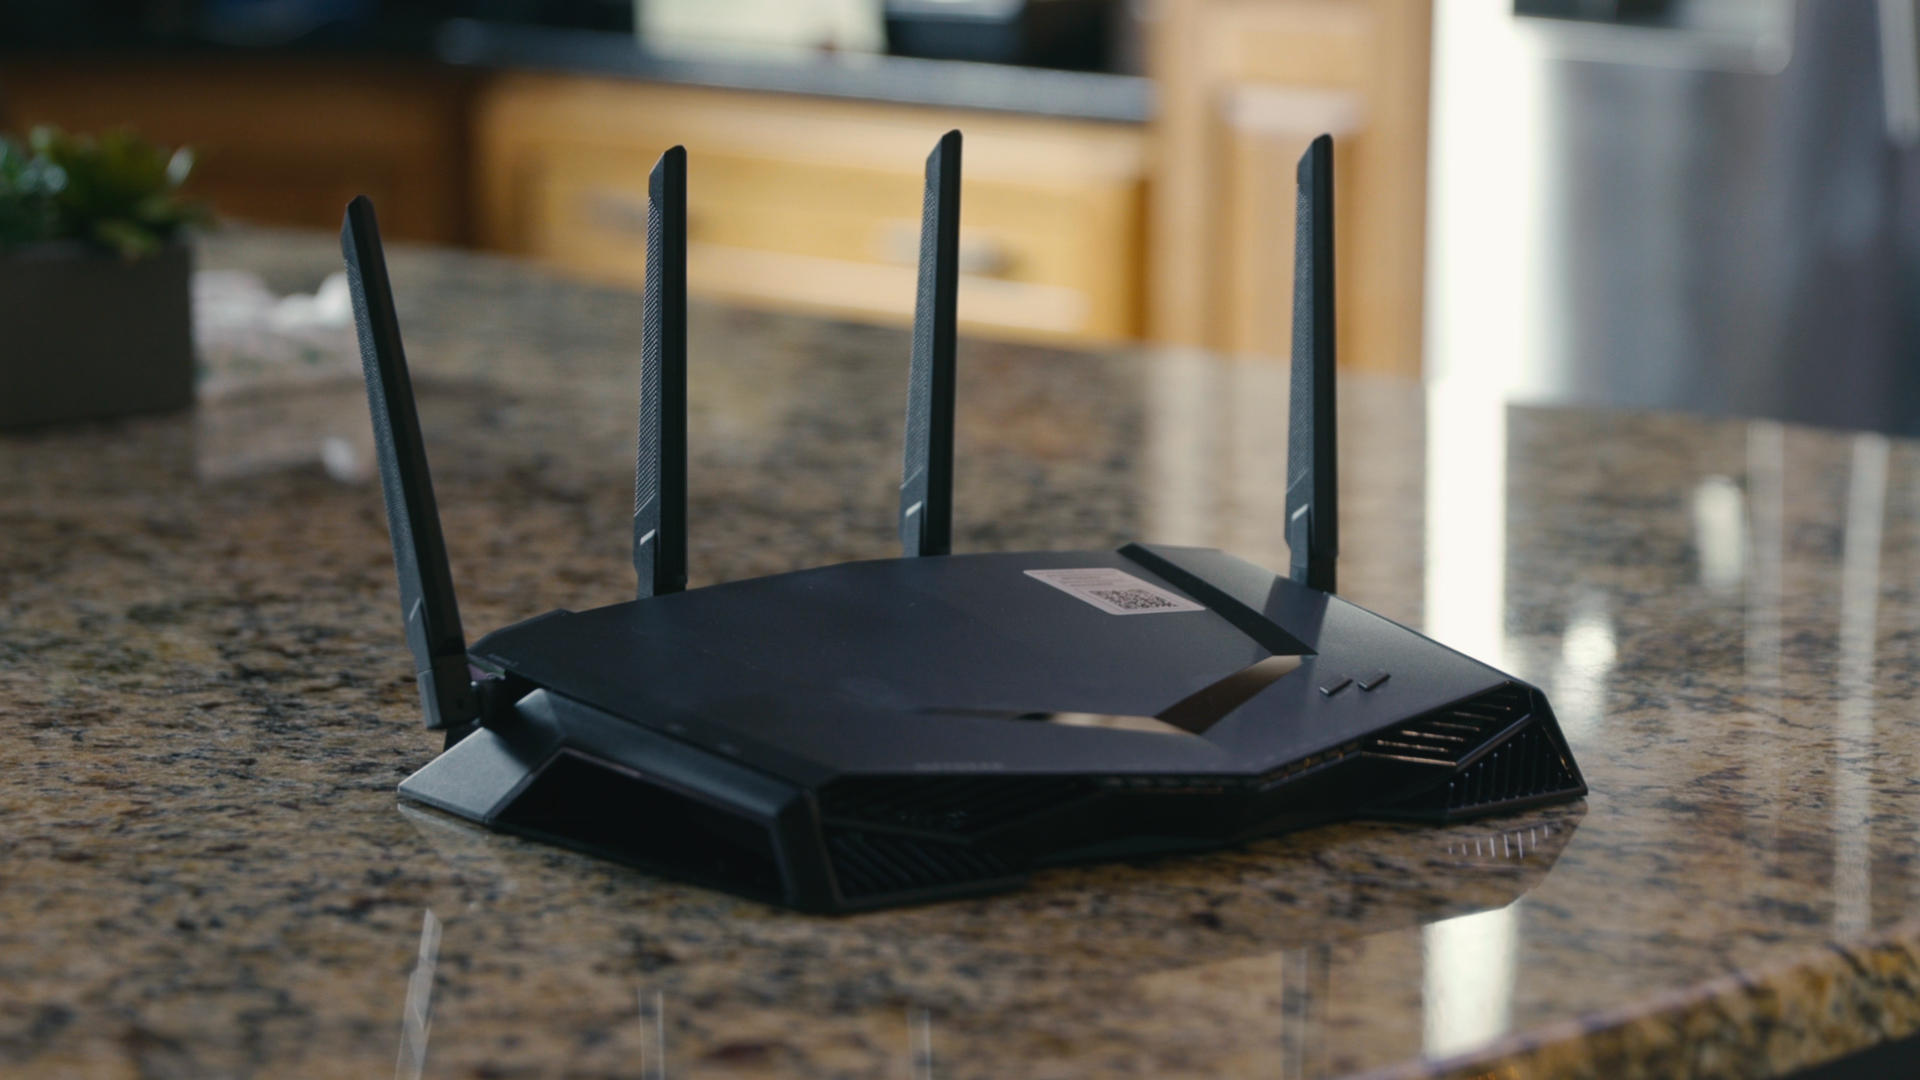 Video: Netgear's XR500 router gives gamers complete control